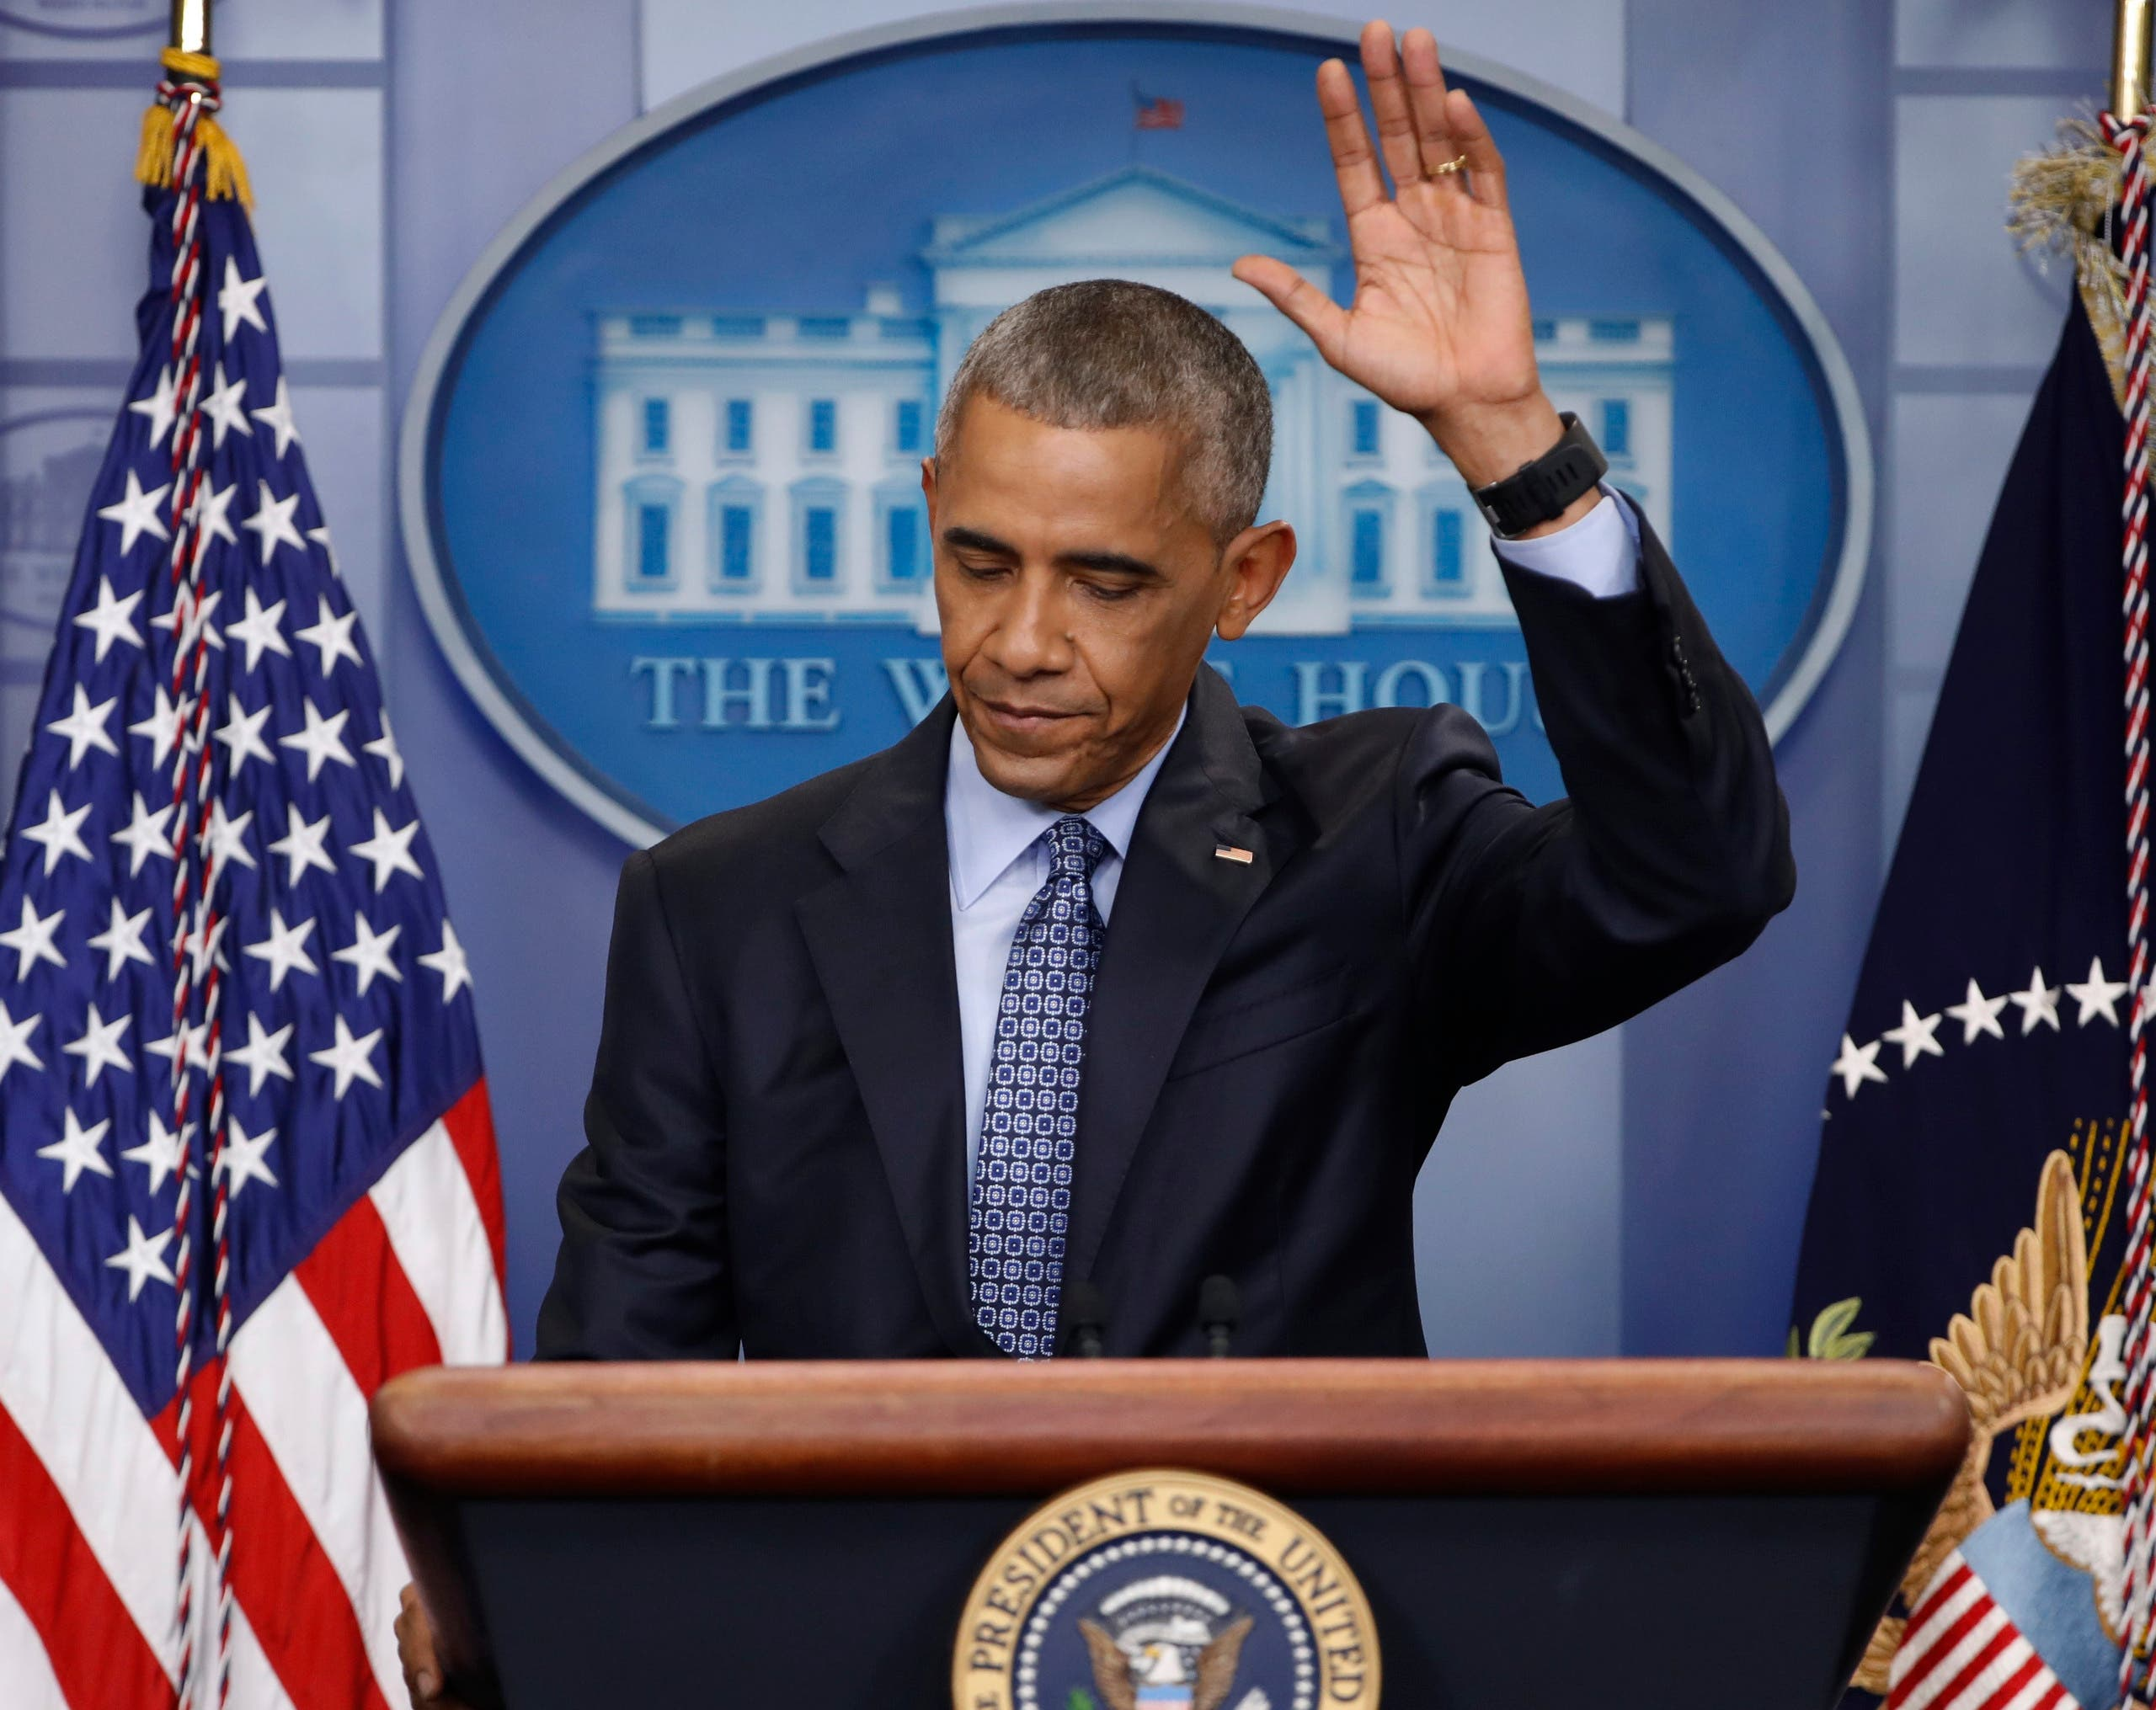 President Barack Obama waves as he concludes his final presidential news conference, Wednesday, Jan. 18, 2017, in the briefing room of the White House in Washington. (AP)